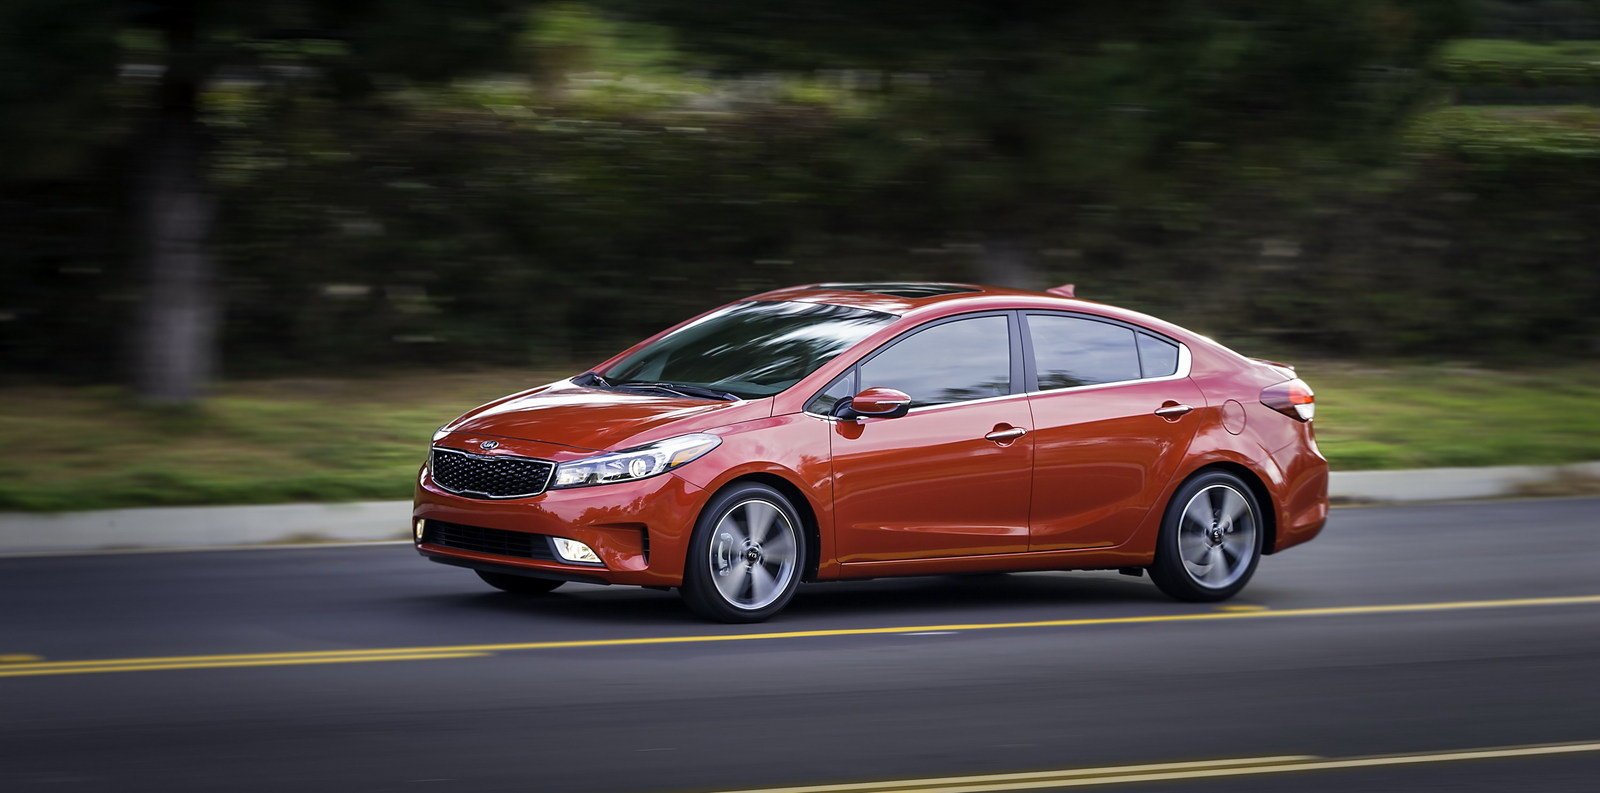 2017 kia forte picture 661737 car review top speed. Black Bedroom Furniture Sets. Home Design Ideas